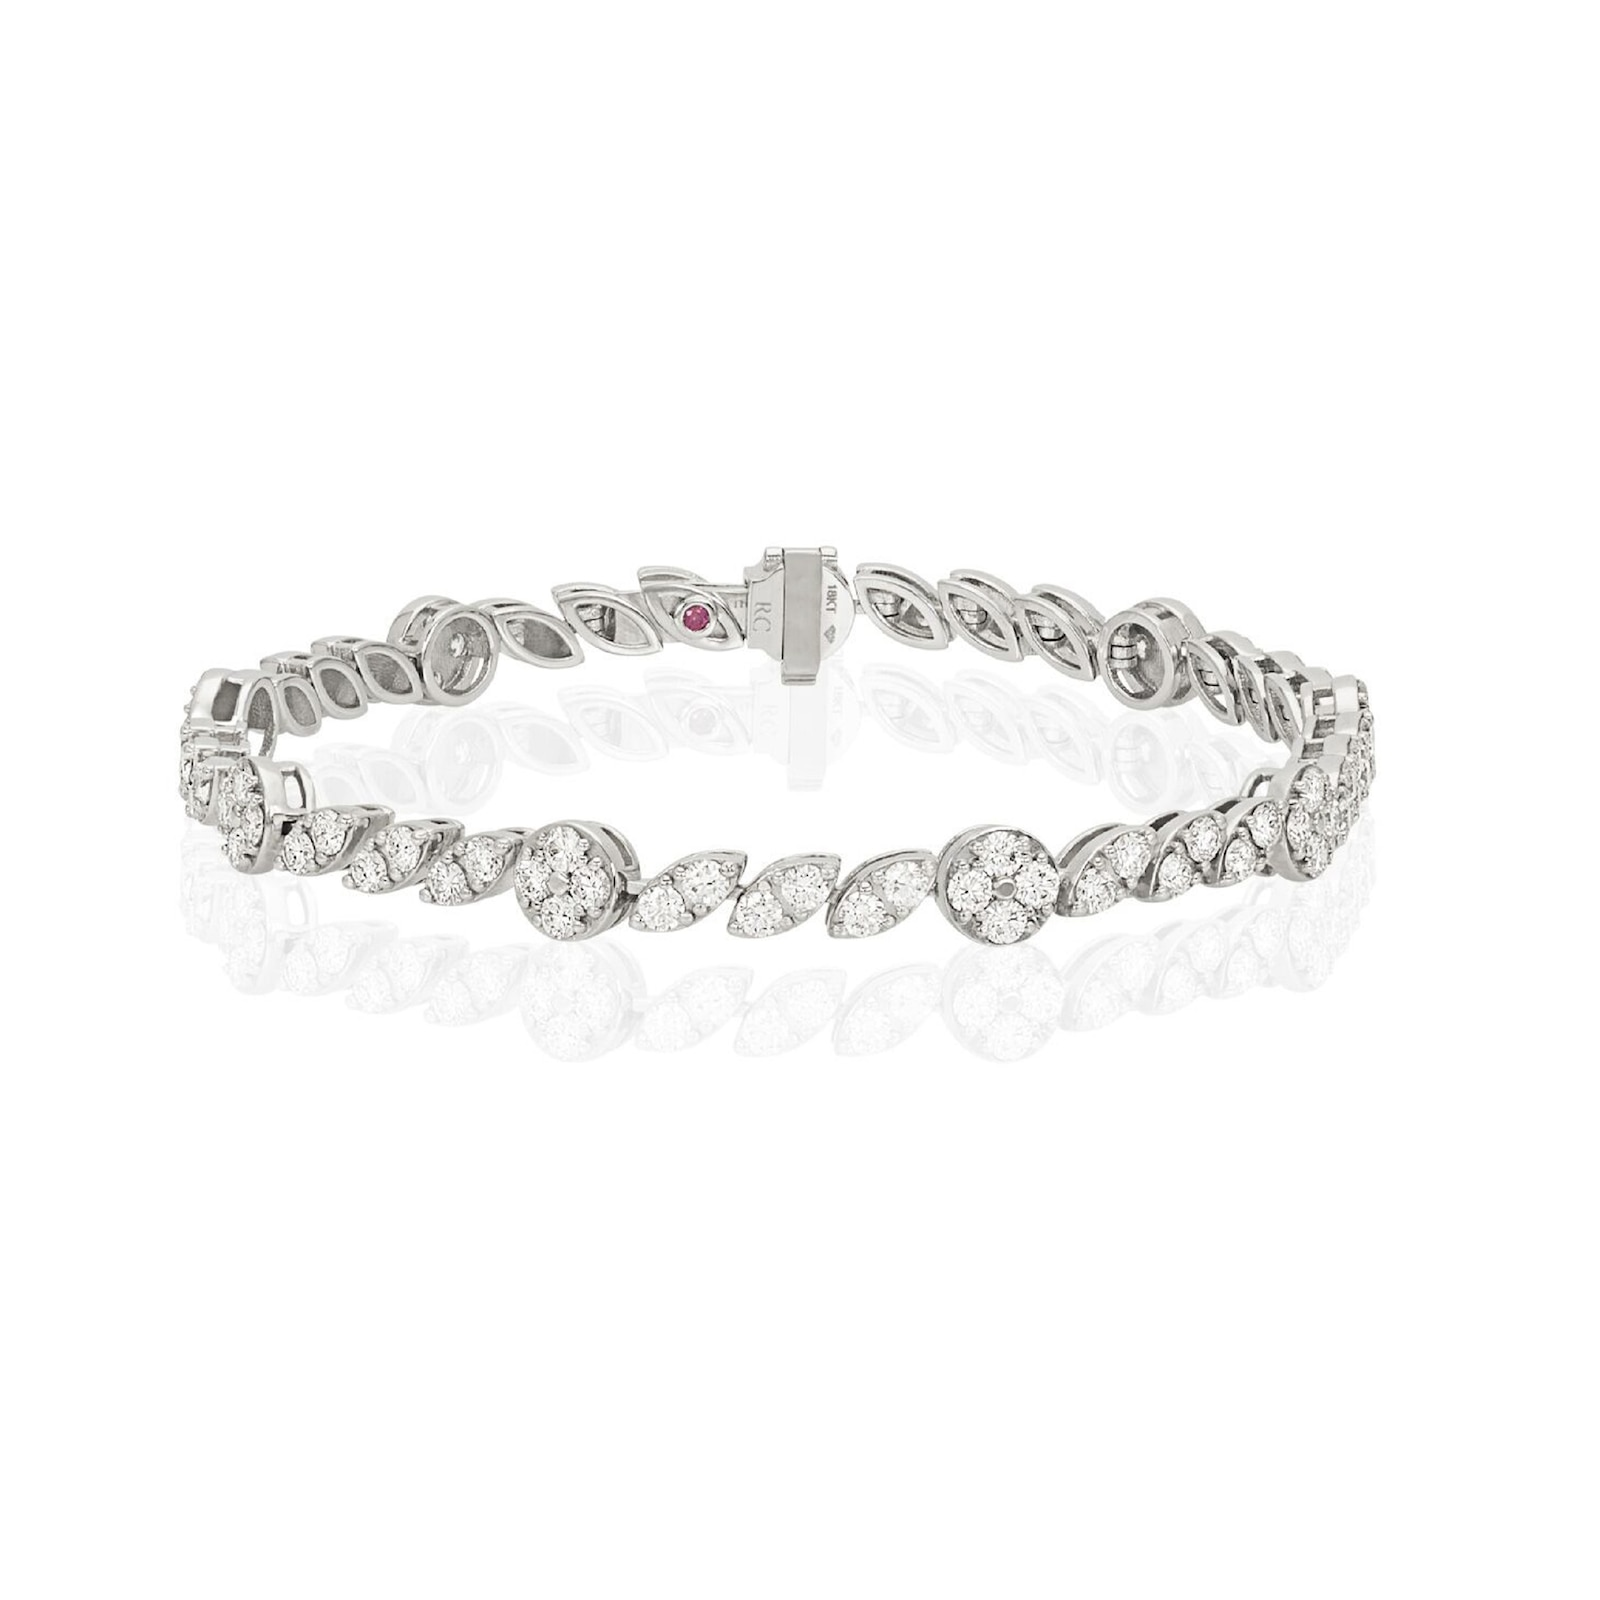 Roberto Coin The Marquesa Collection 18k White Gold 3.70cttw Diamond Swirl Bracelet